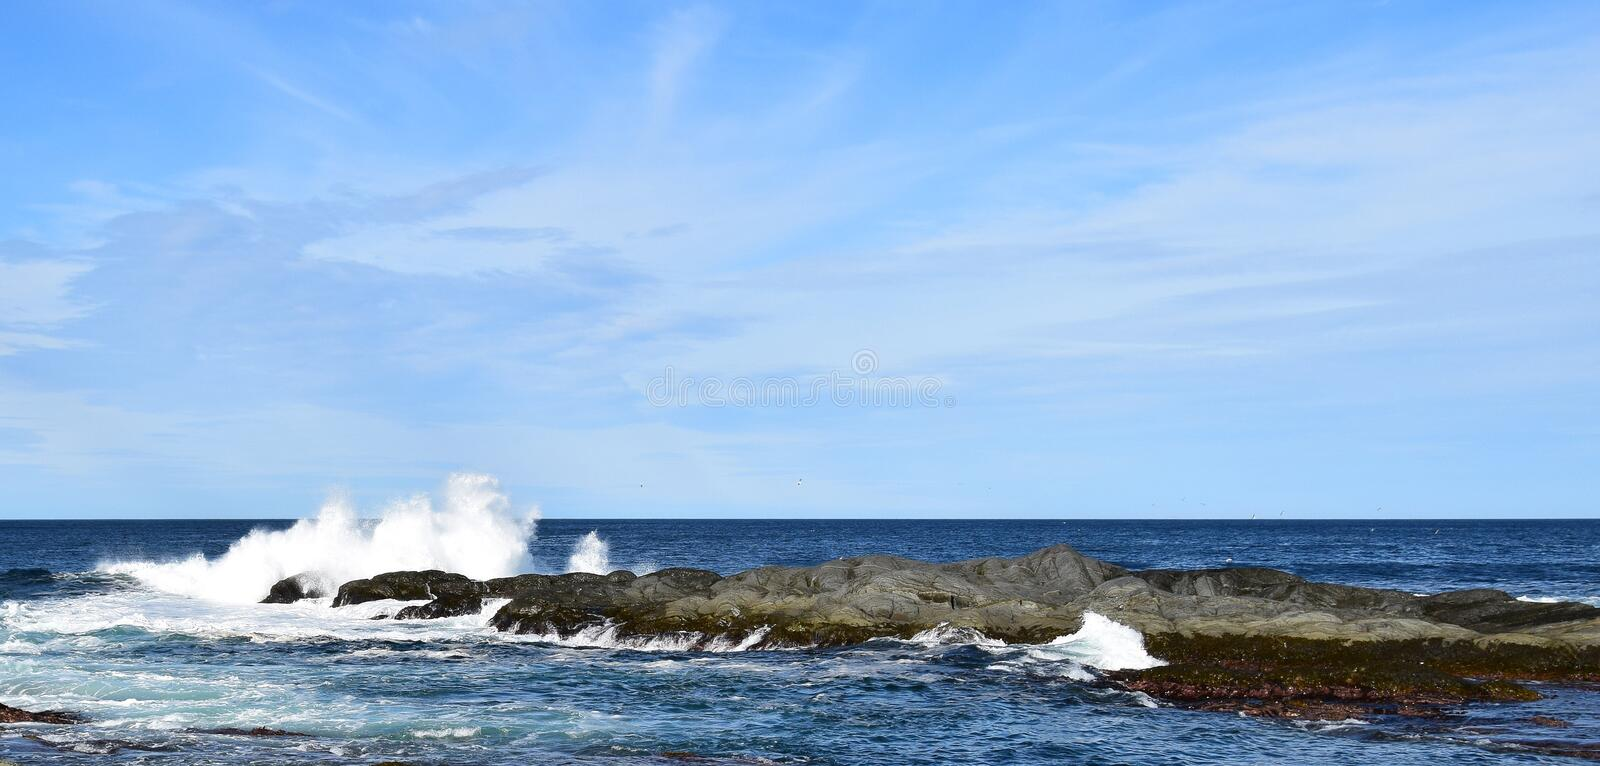 wave hitting a rock in the ocean making a big splash royalty free stock photography